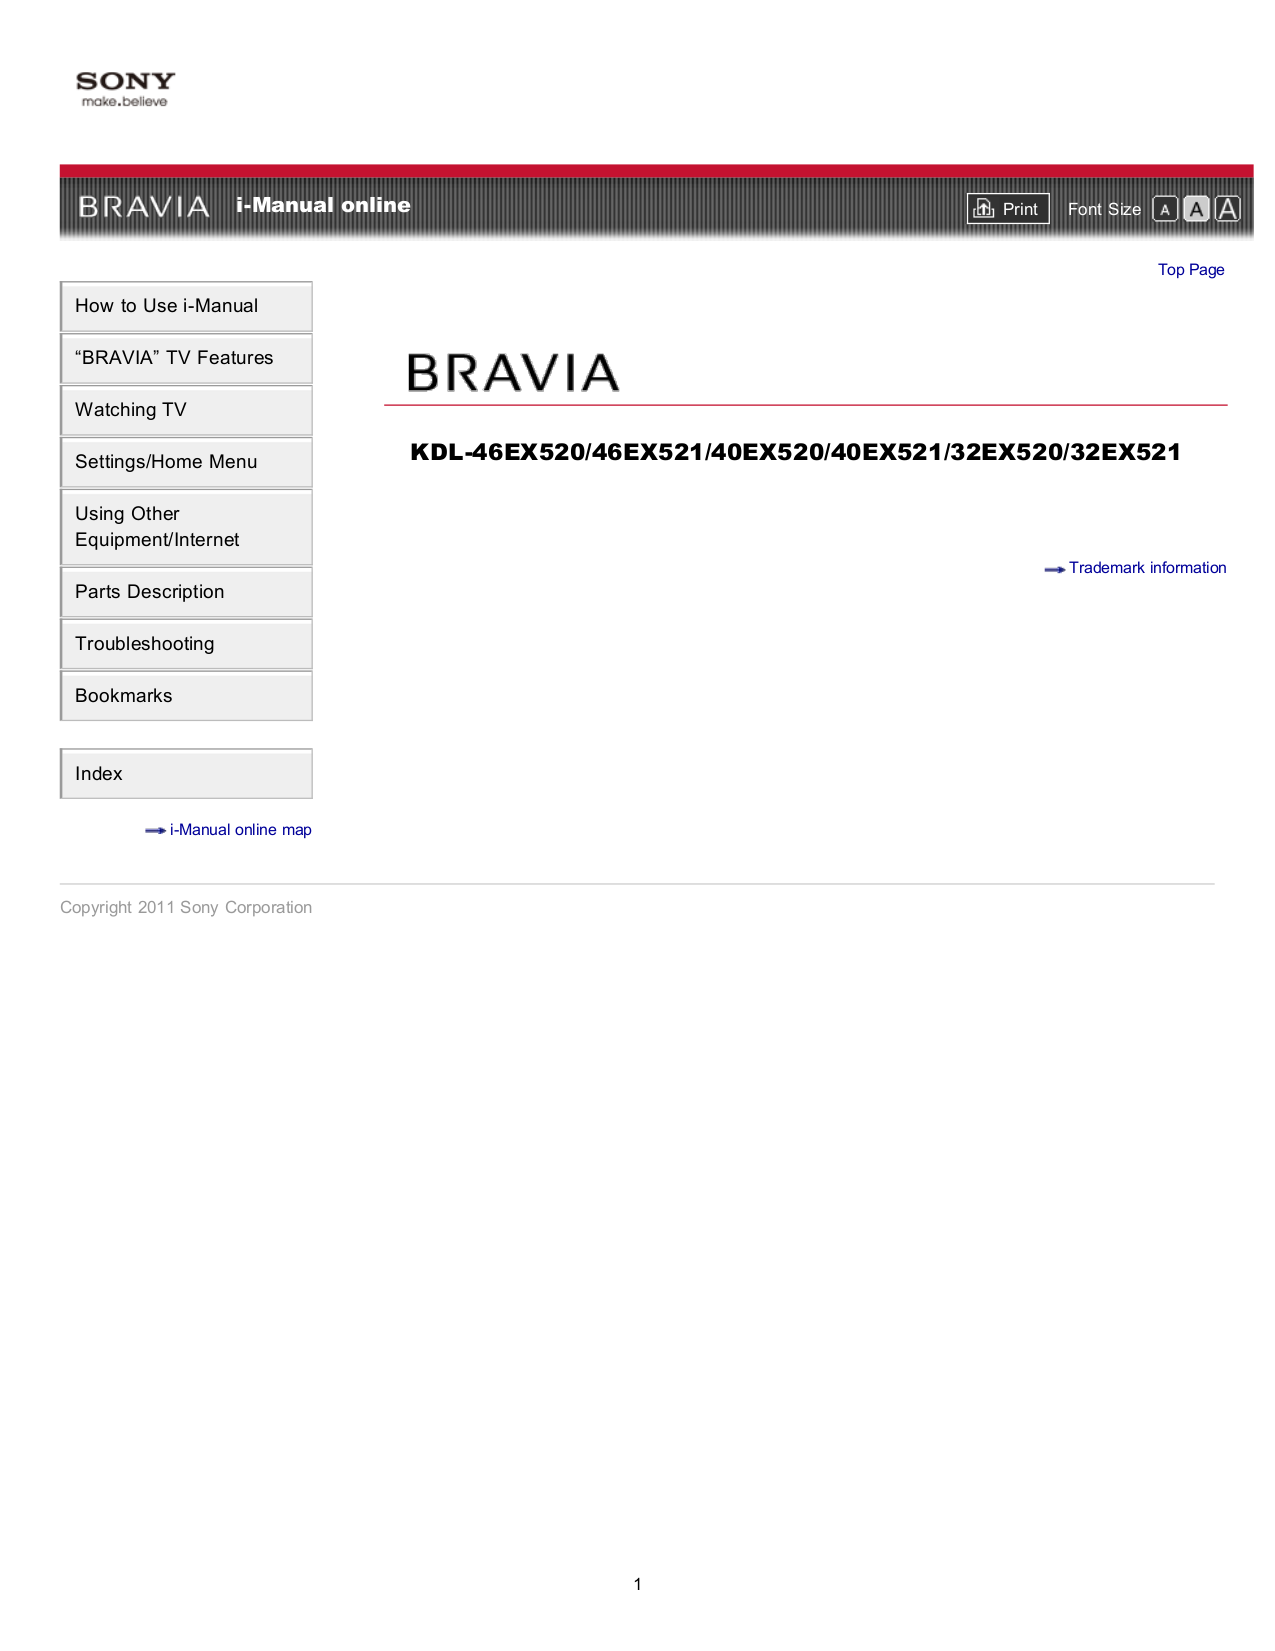 Sony i manual pdf for sony tv bravia kdl 46ex520 manual fandeluxe Images